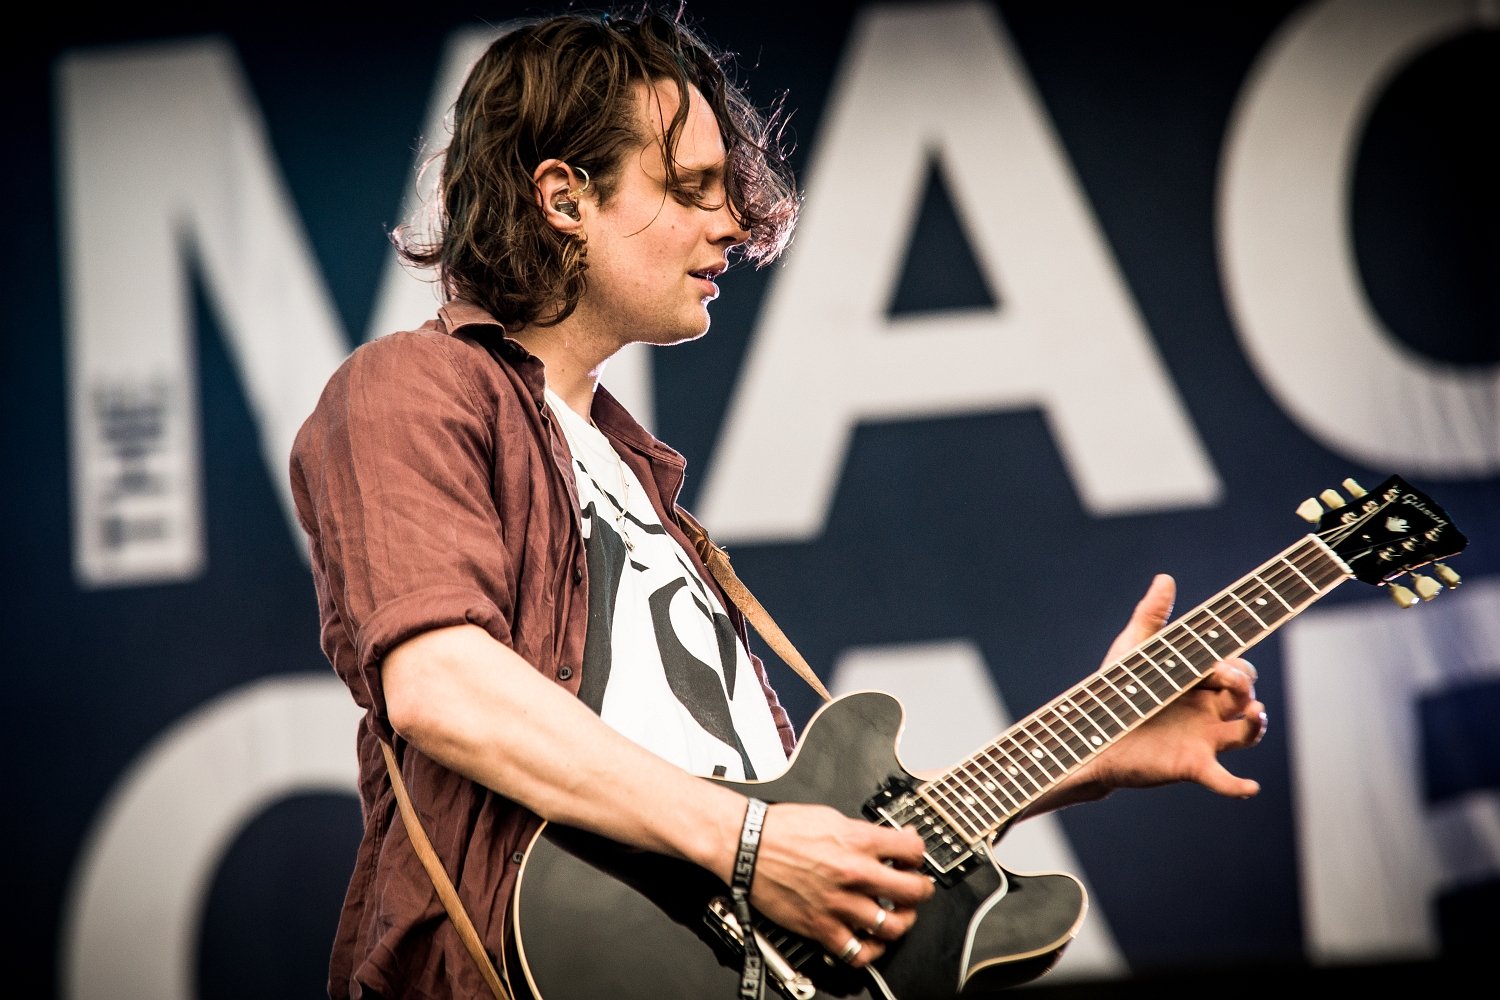 The Maccabees 12